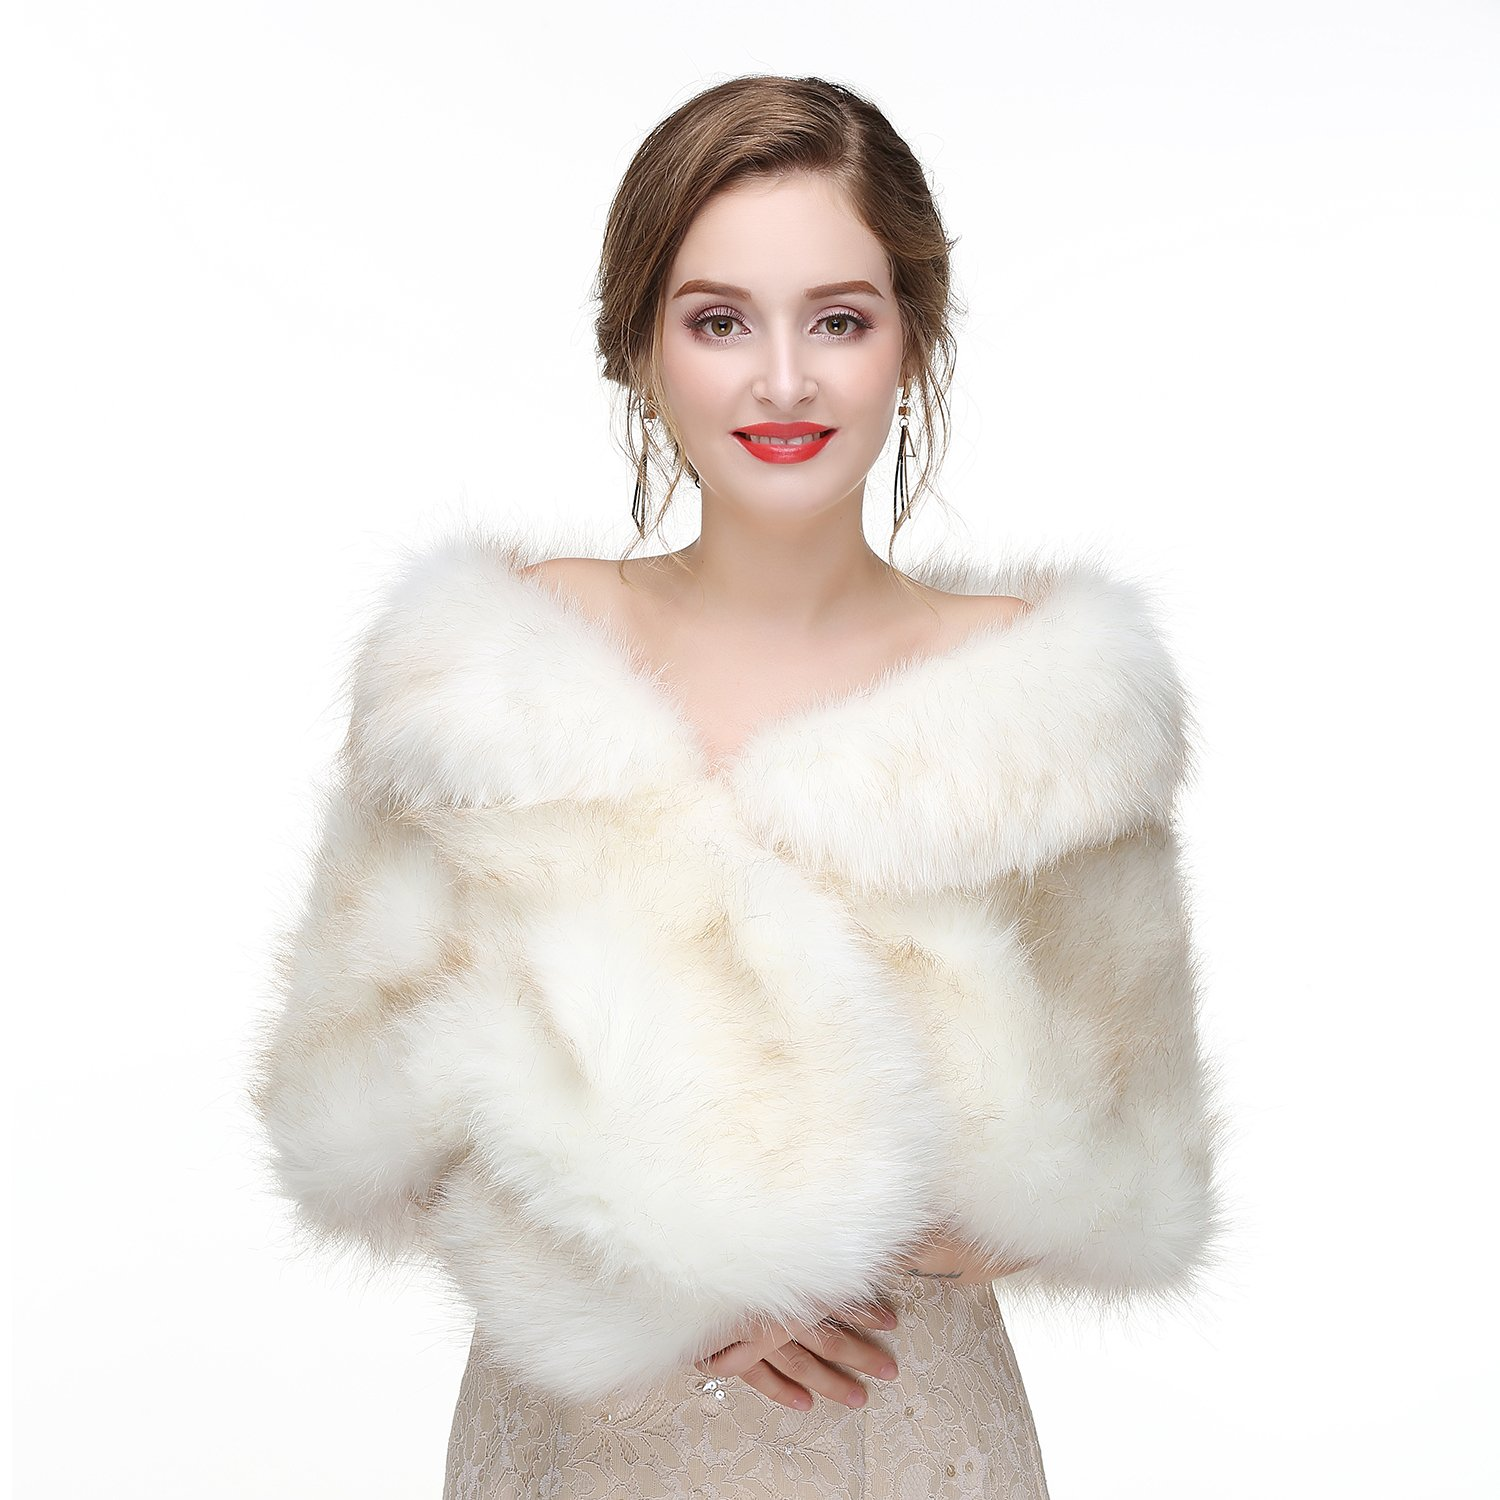 Decahome Faux Fur Shawl Wrap Stole Shrug Winter Bridal Wedding Cover Up White Fox Fur 35 by Decahome